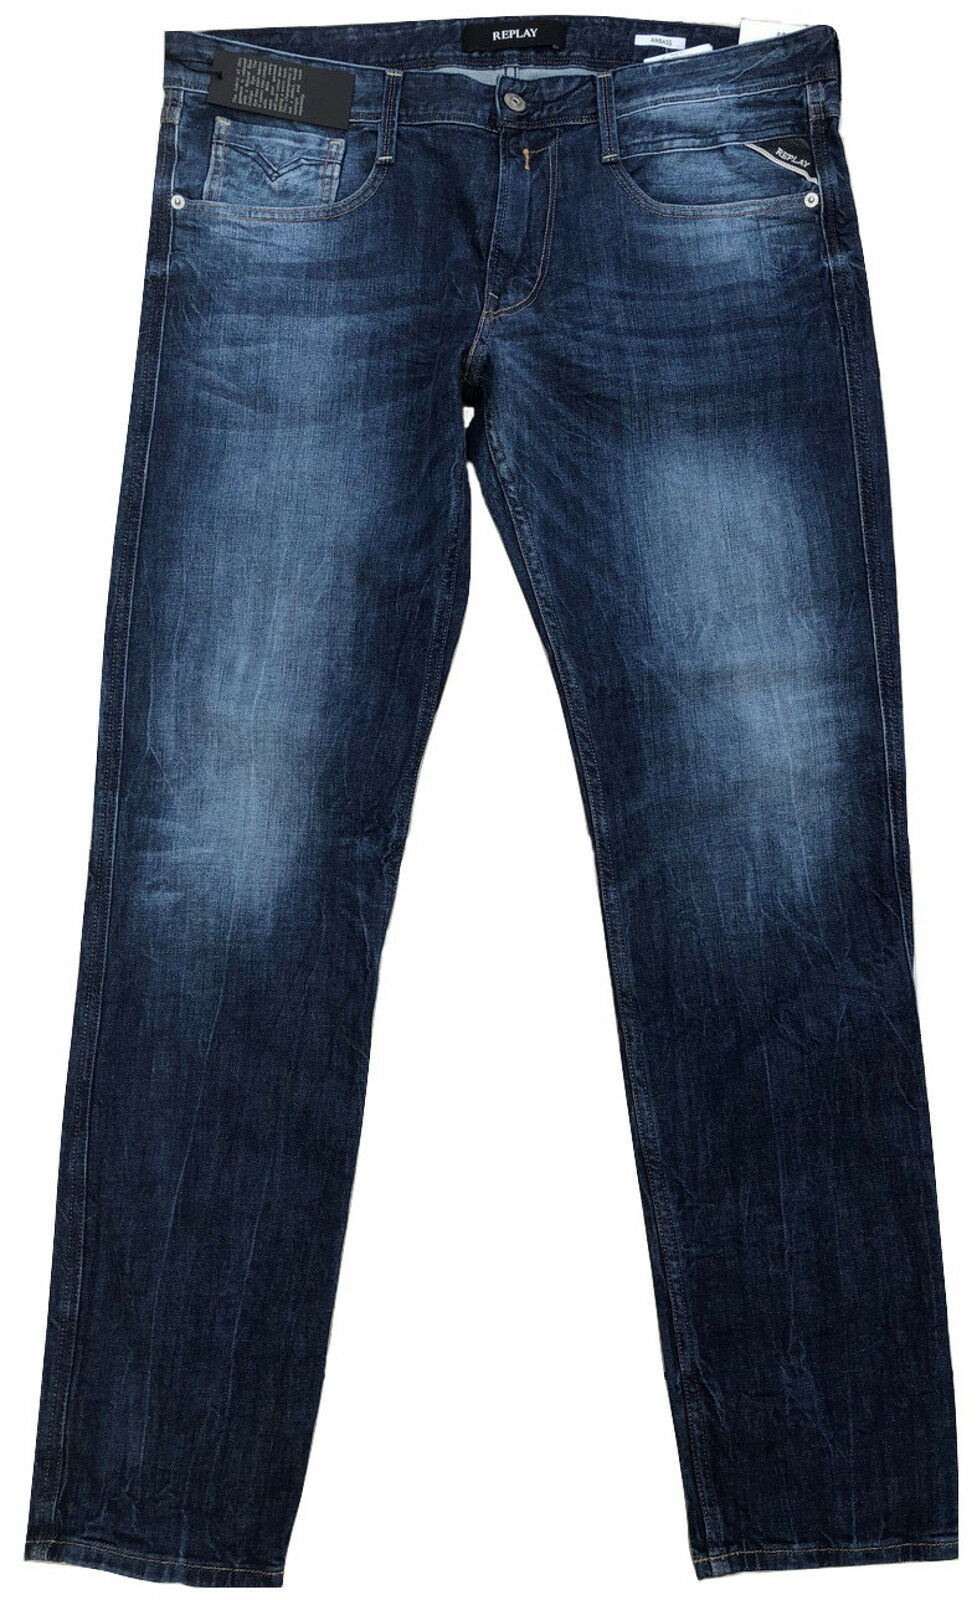 Replay Men's Anbass M914 Jeans 34 x 32 Slim Skinny Fit New Blau Stretch